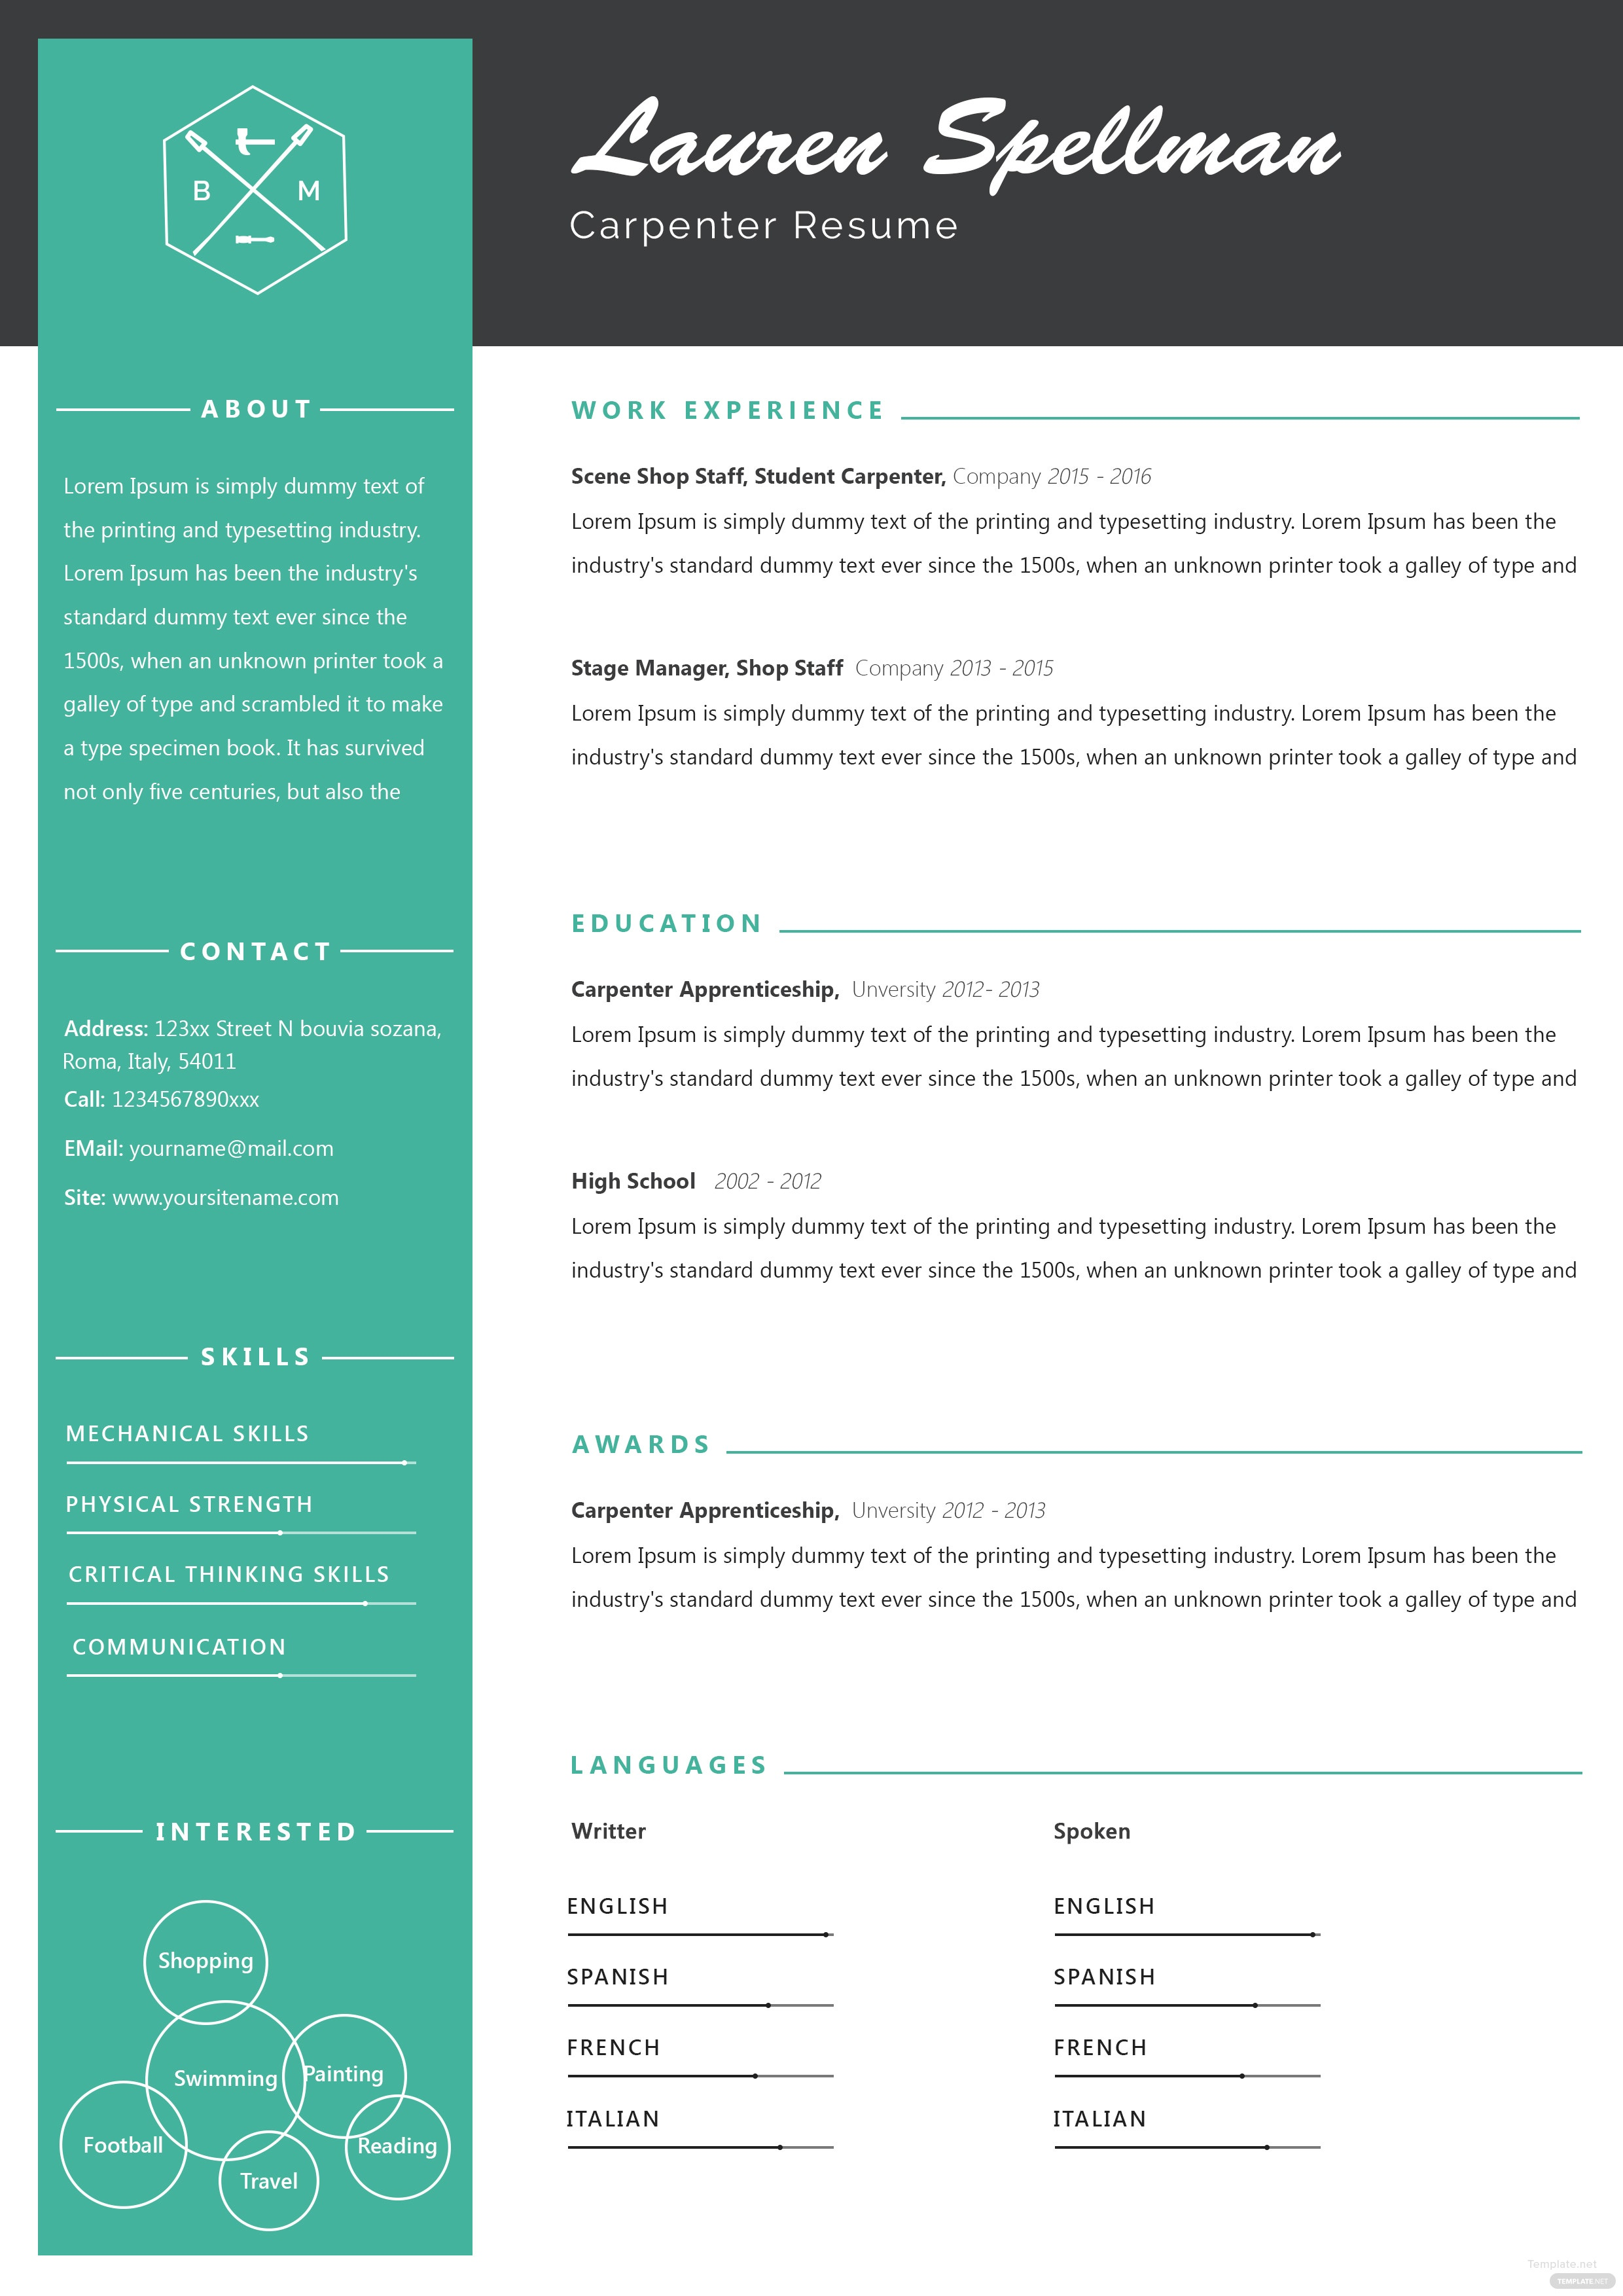 free sample carpenter resume and cv template in adobe photoshop  microsoft word  publisher